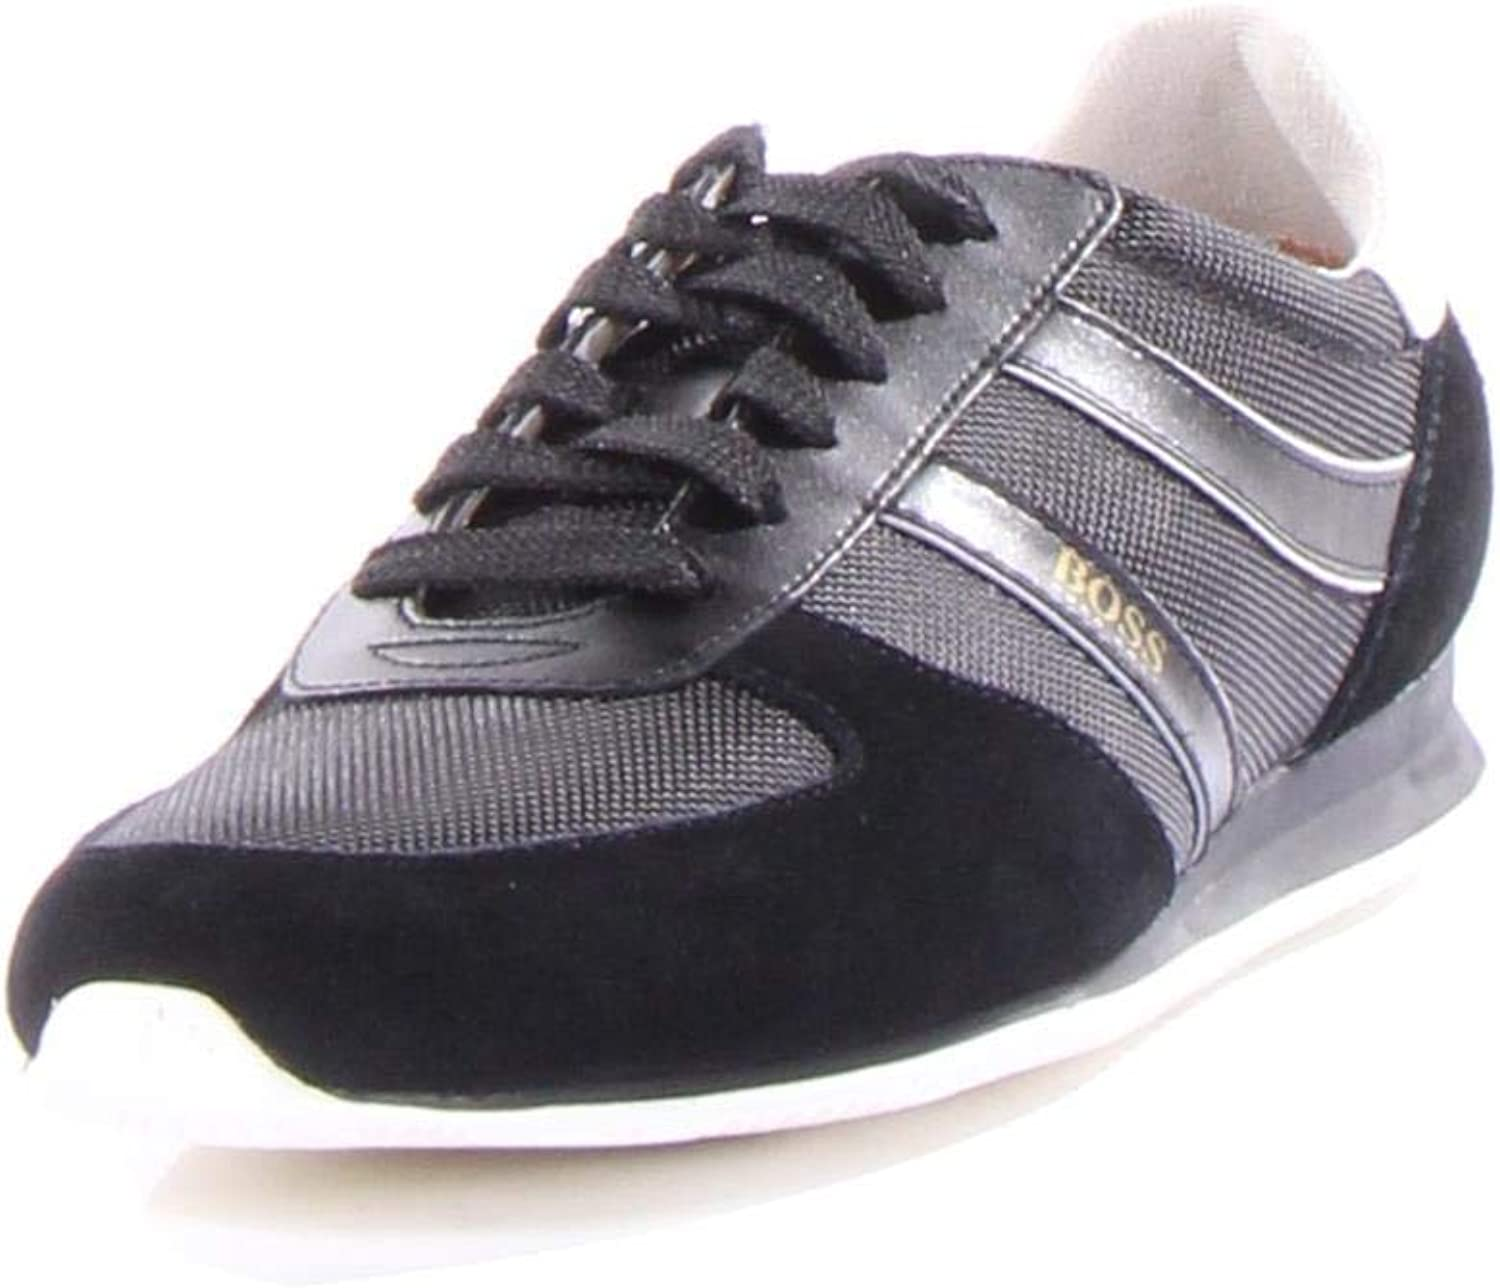 Hugo Boss Men Orland_Lowp_ny1 Sneakers shoes